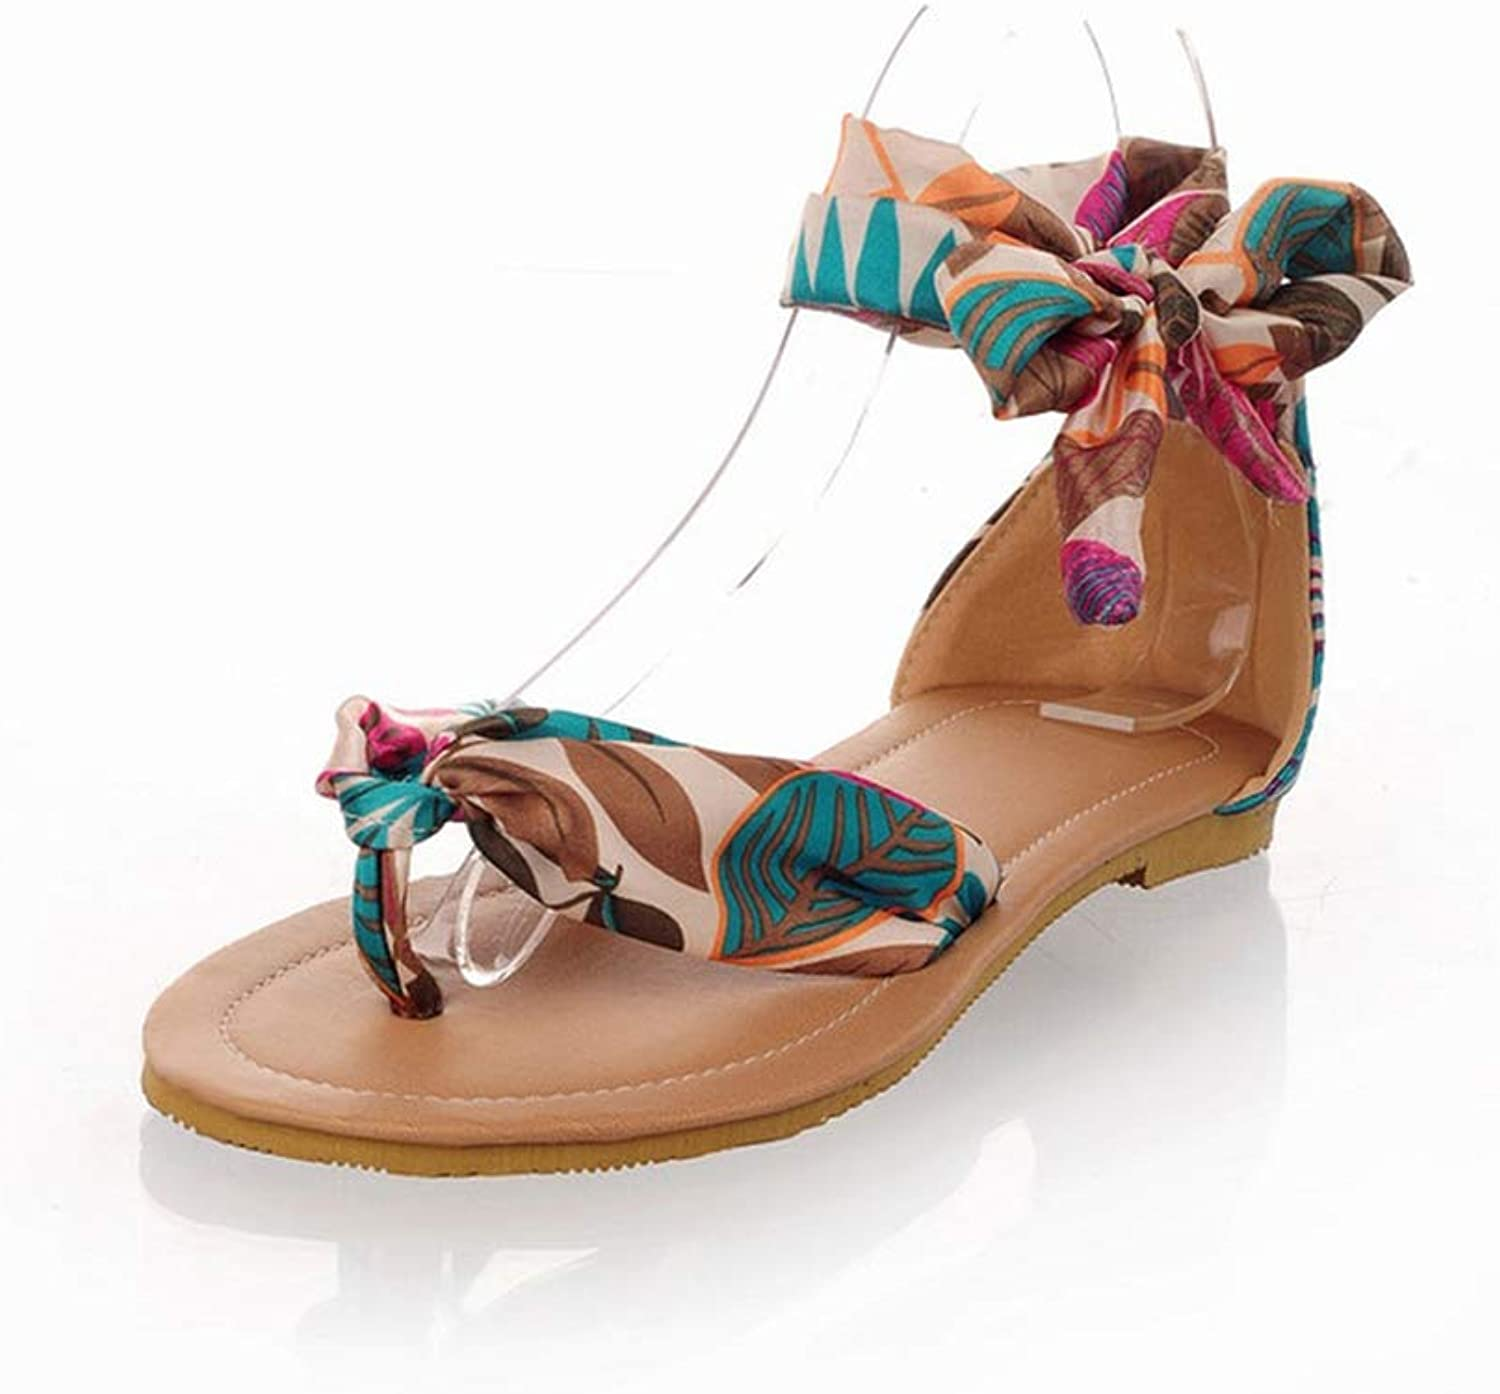 Women Flatform Sandals Bohemian Ribbon Sandal Comfy Thin Belt Non-Slip Breathable shoes Leather Casual shoes,bluee,39